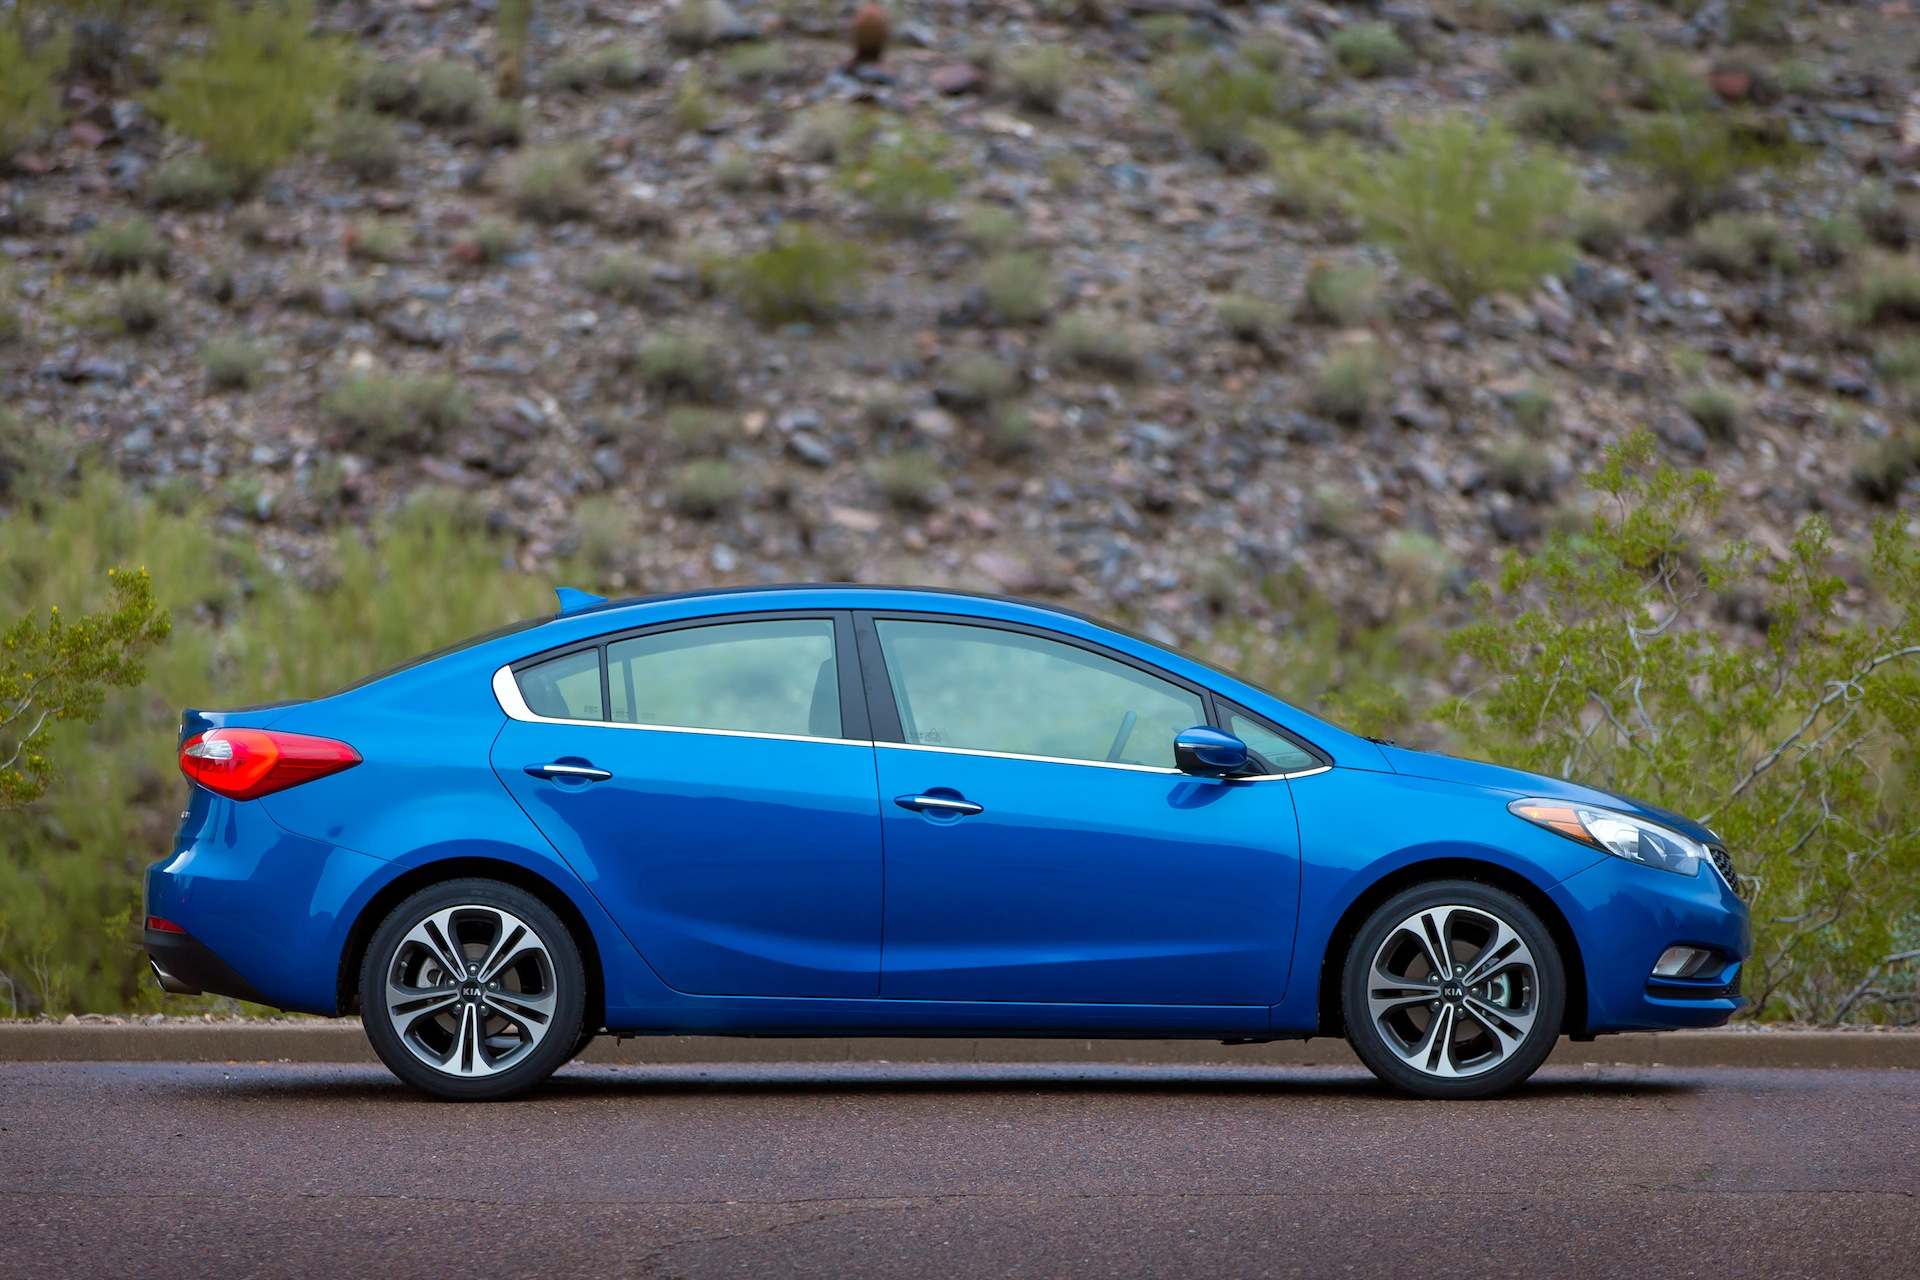 2014 Kia Forte Review, Ratings, Specs, Prices, and Photos ...